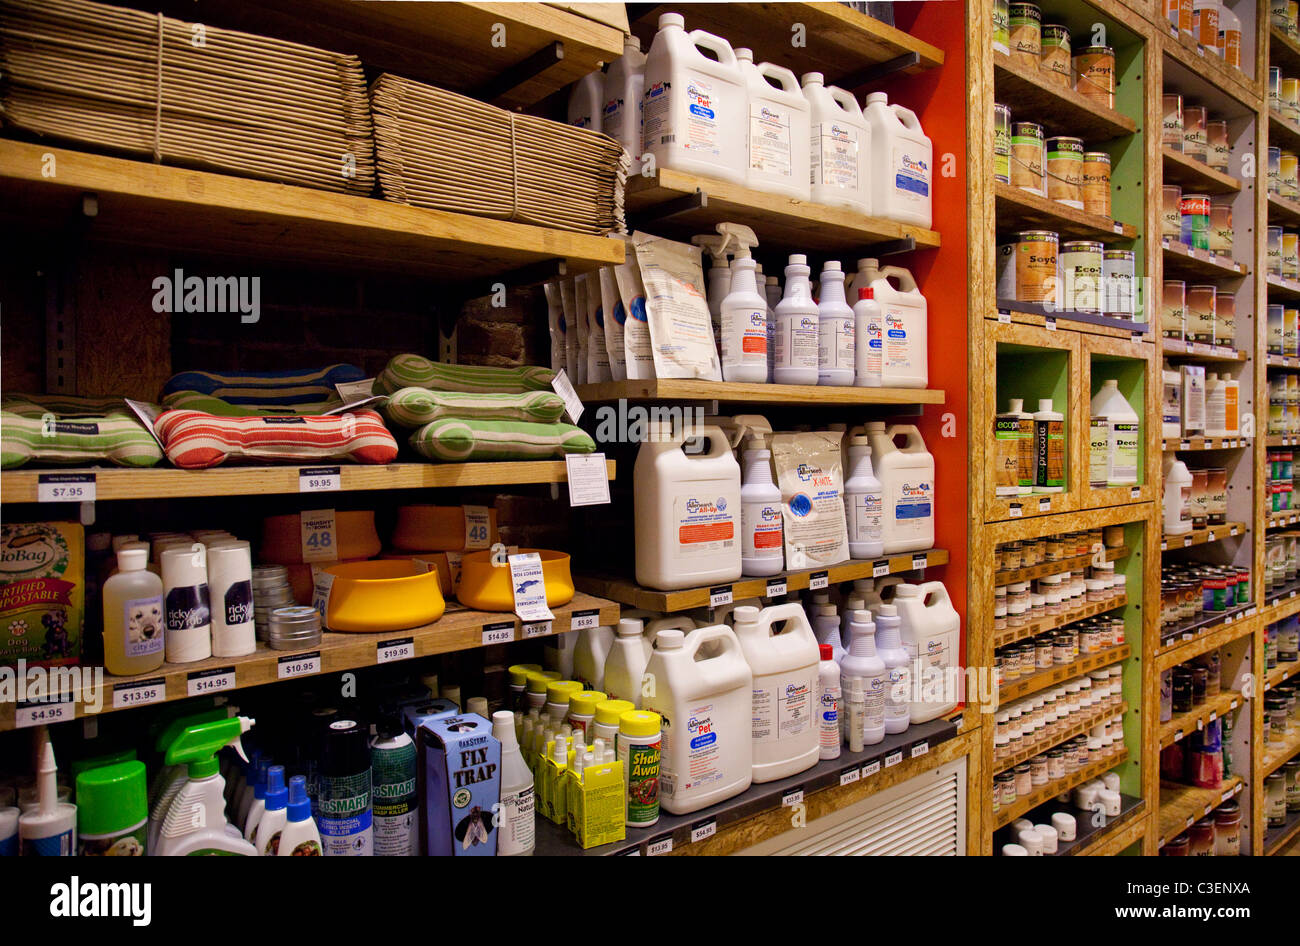 Green house product display - Stock Image